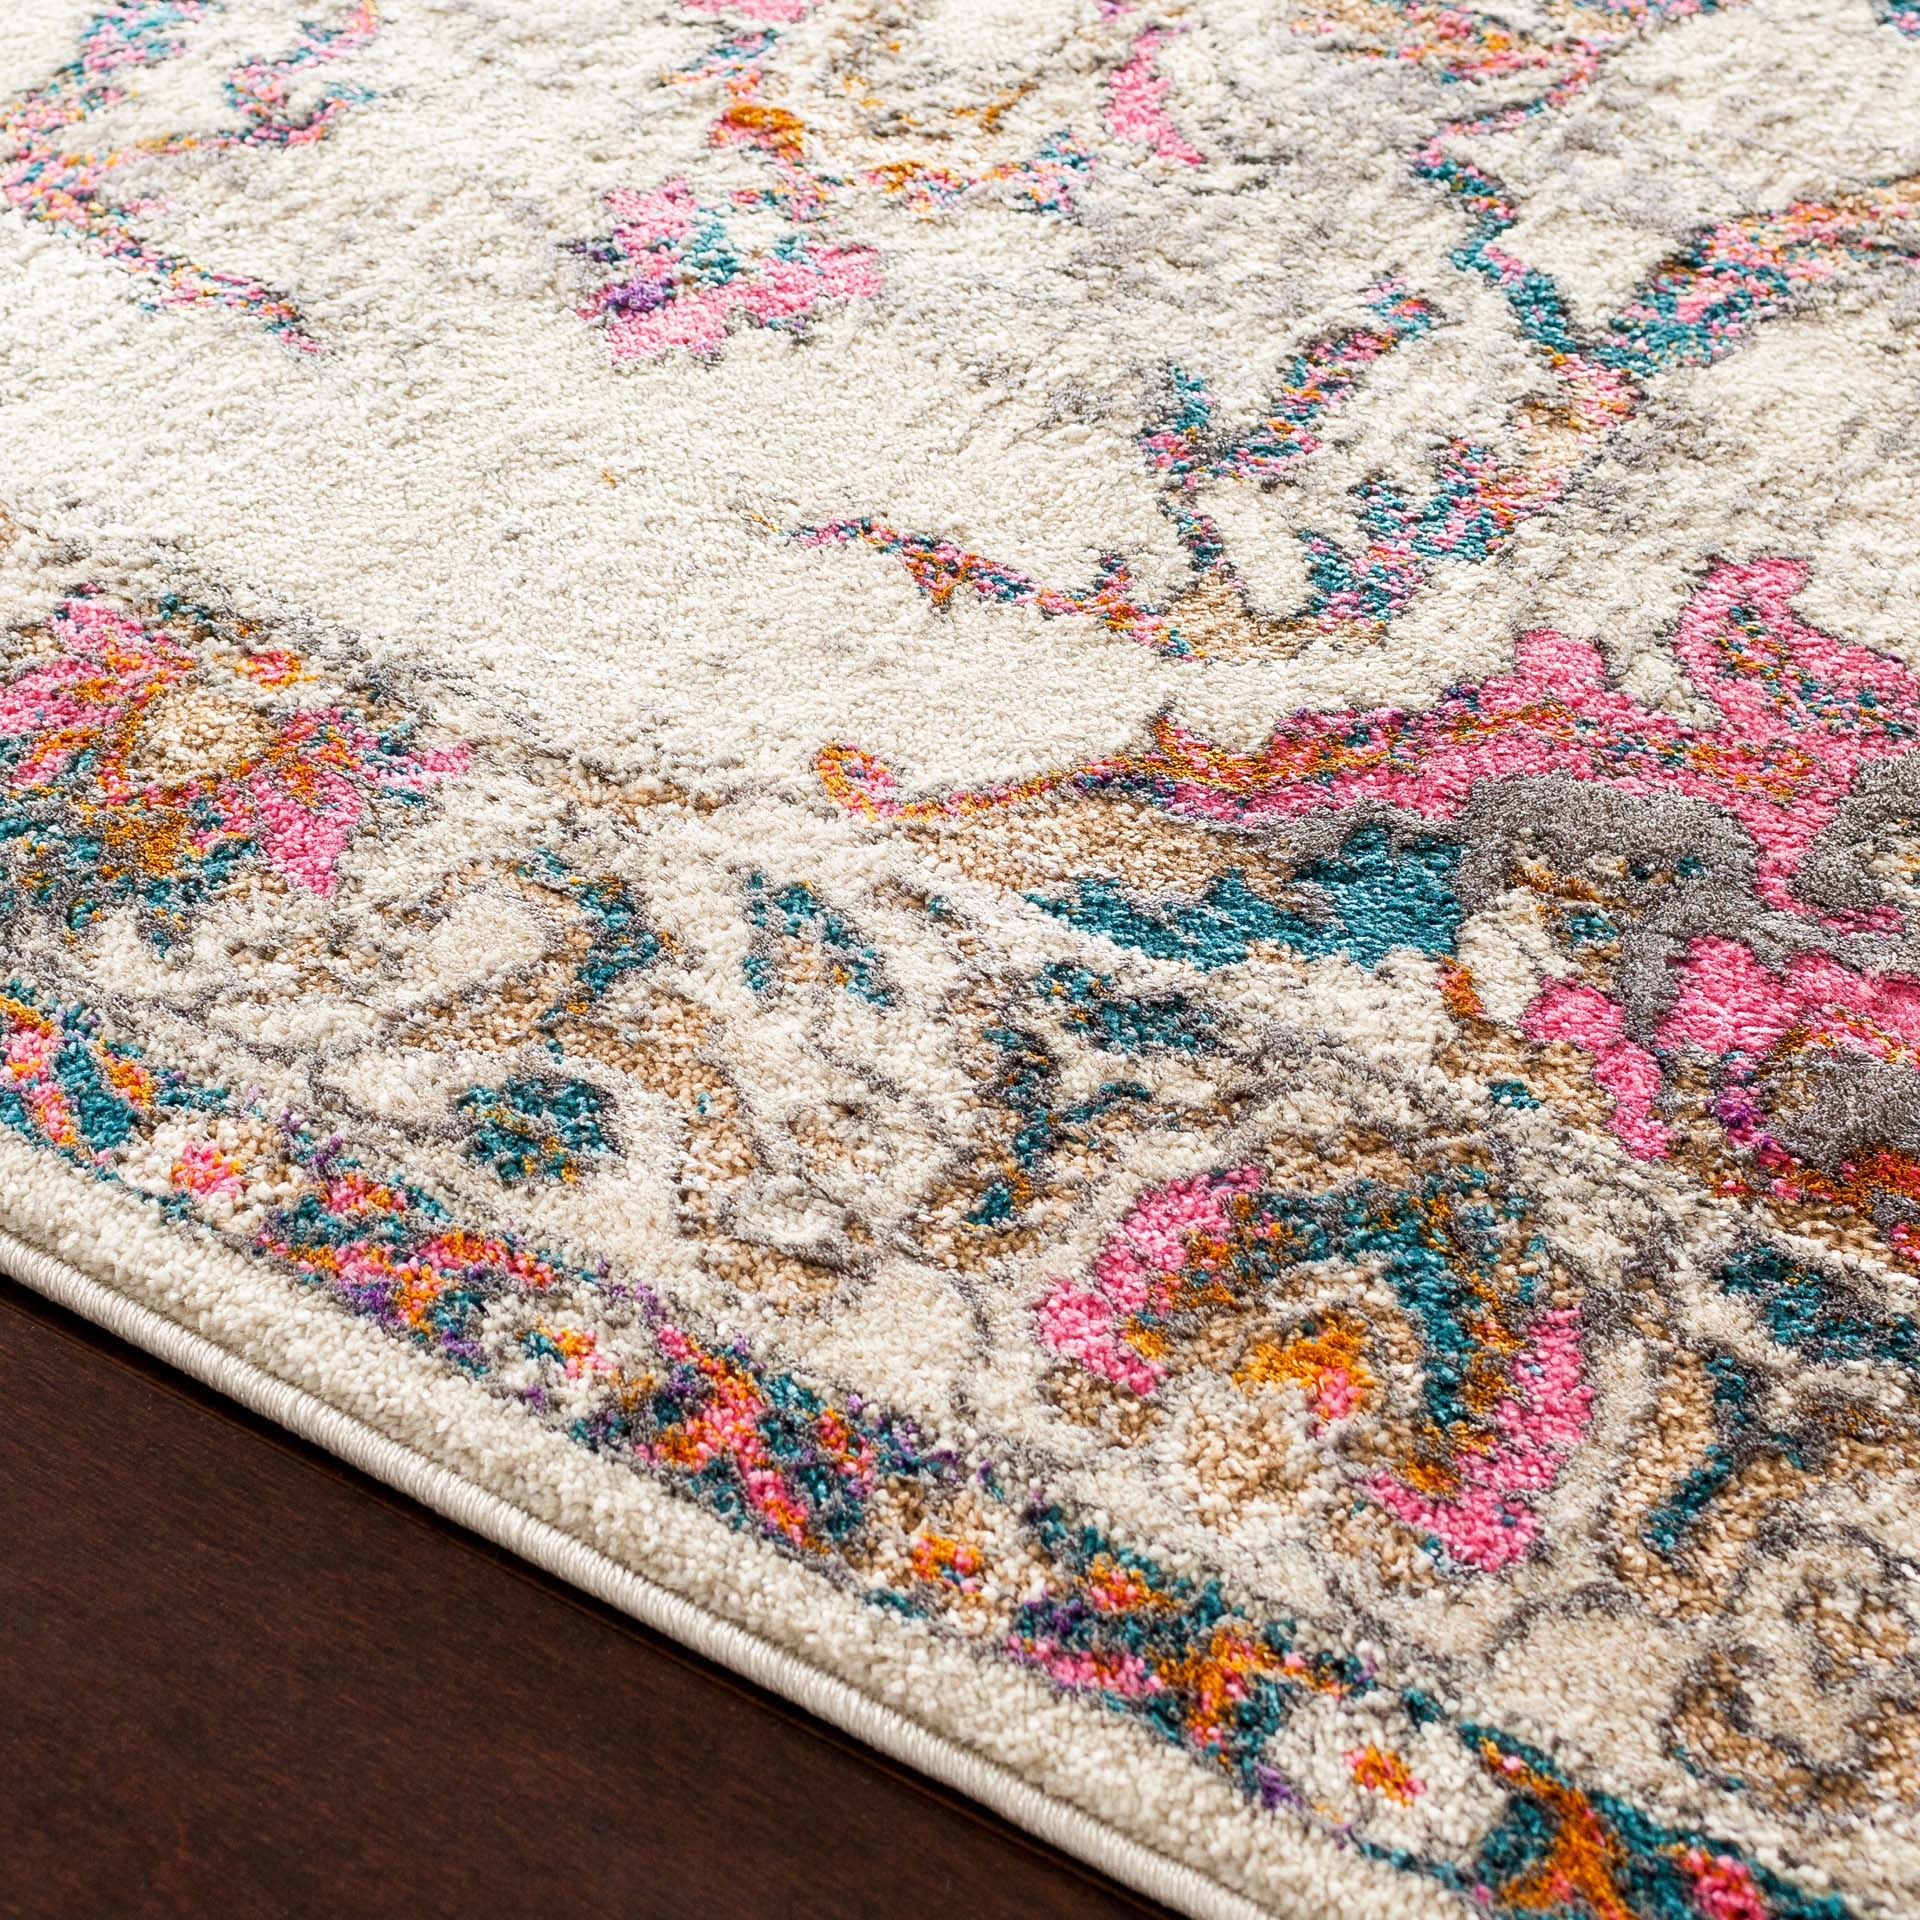 Classic Turkish area rug in ivory with pink, teal, gray and orange floral and ribbon pattern - Close up